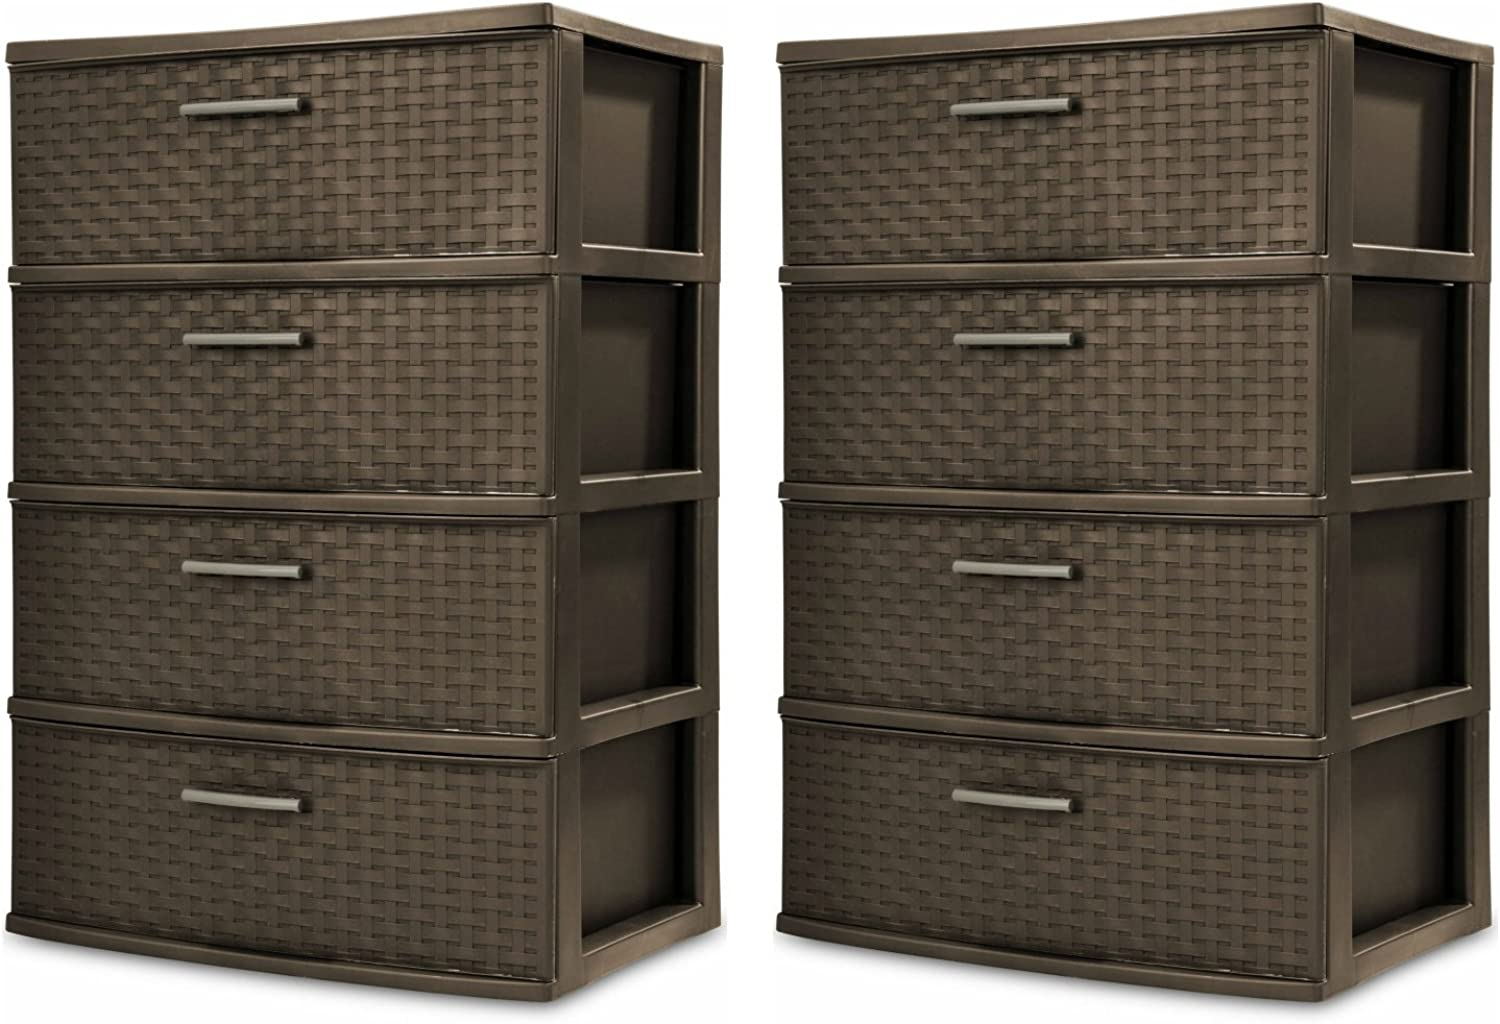 Sterilite 4-Drawer Wide Weave Tower, Espresso Frame & Drawers w  Driftwood Handles, 2-Pack